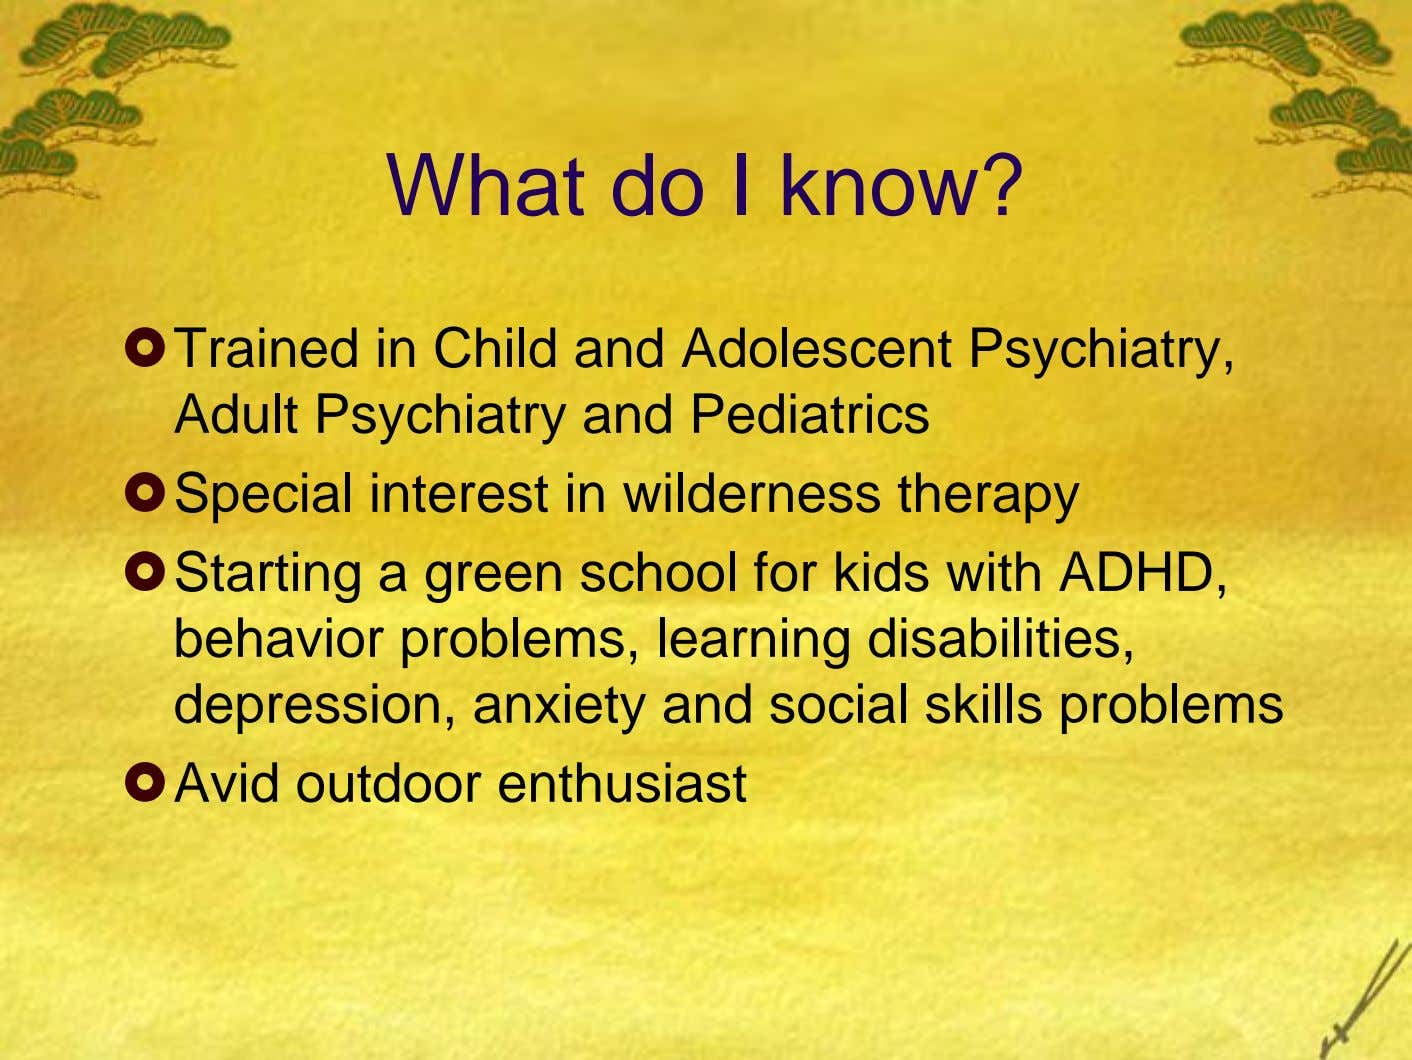 What do I know? Trained in Child and Adolescent Psychiatry, Adult Psychiatry and Pediatrics Special interest